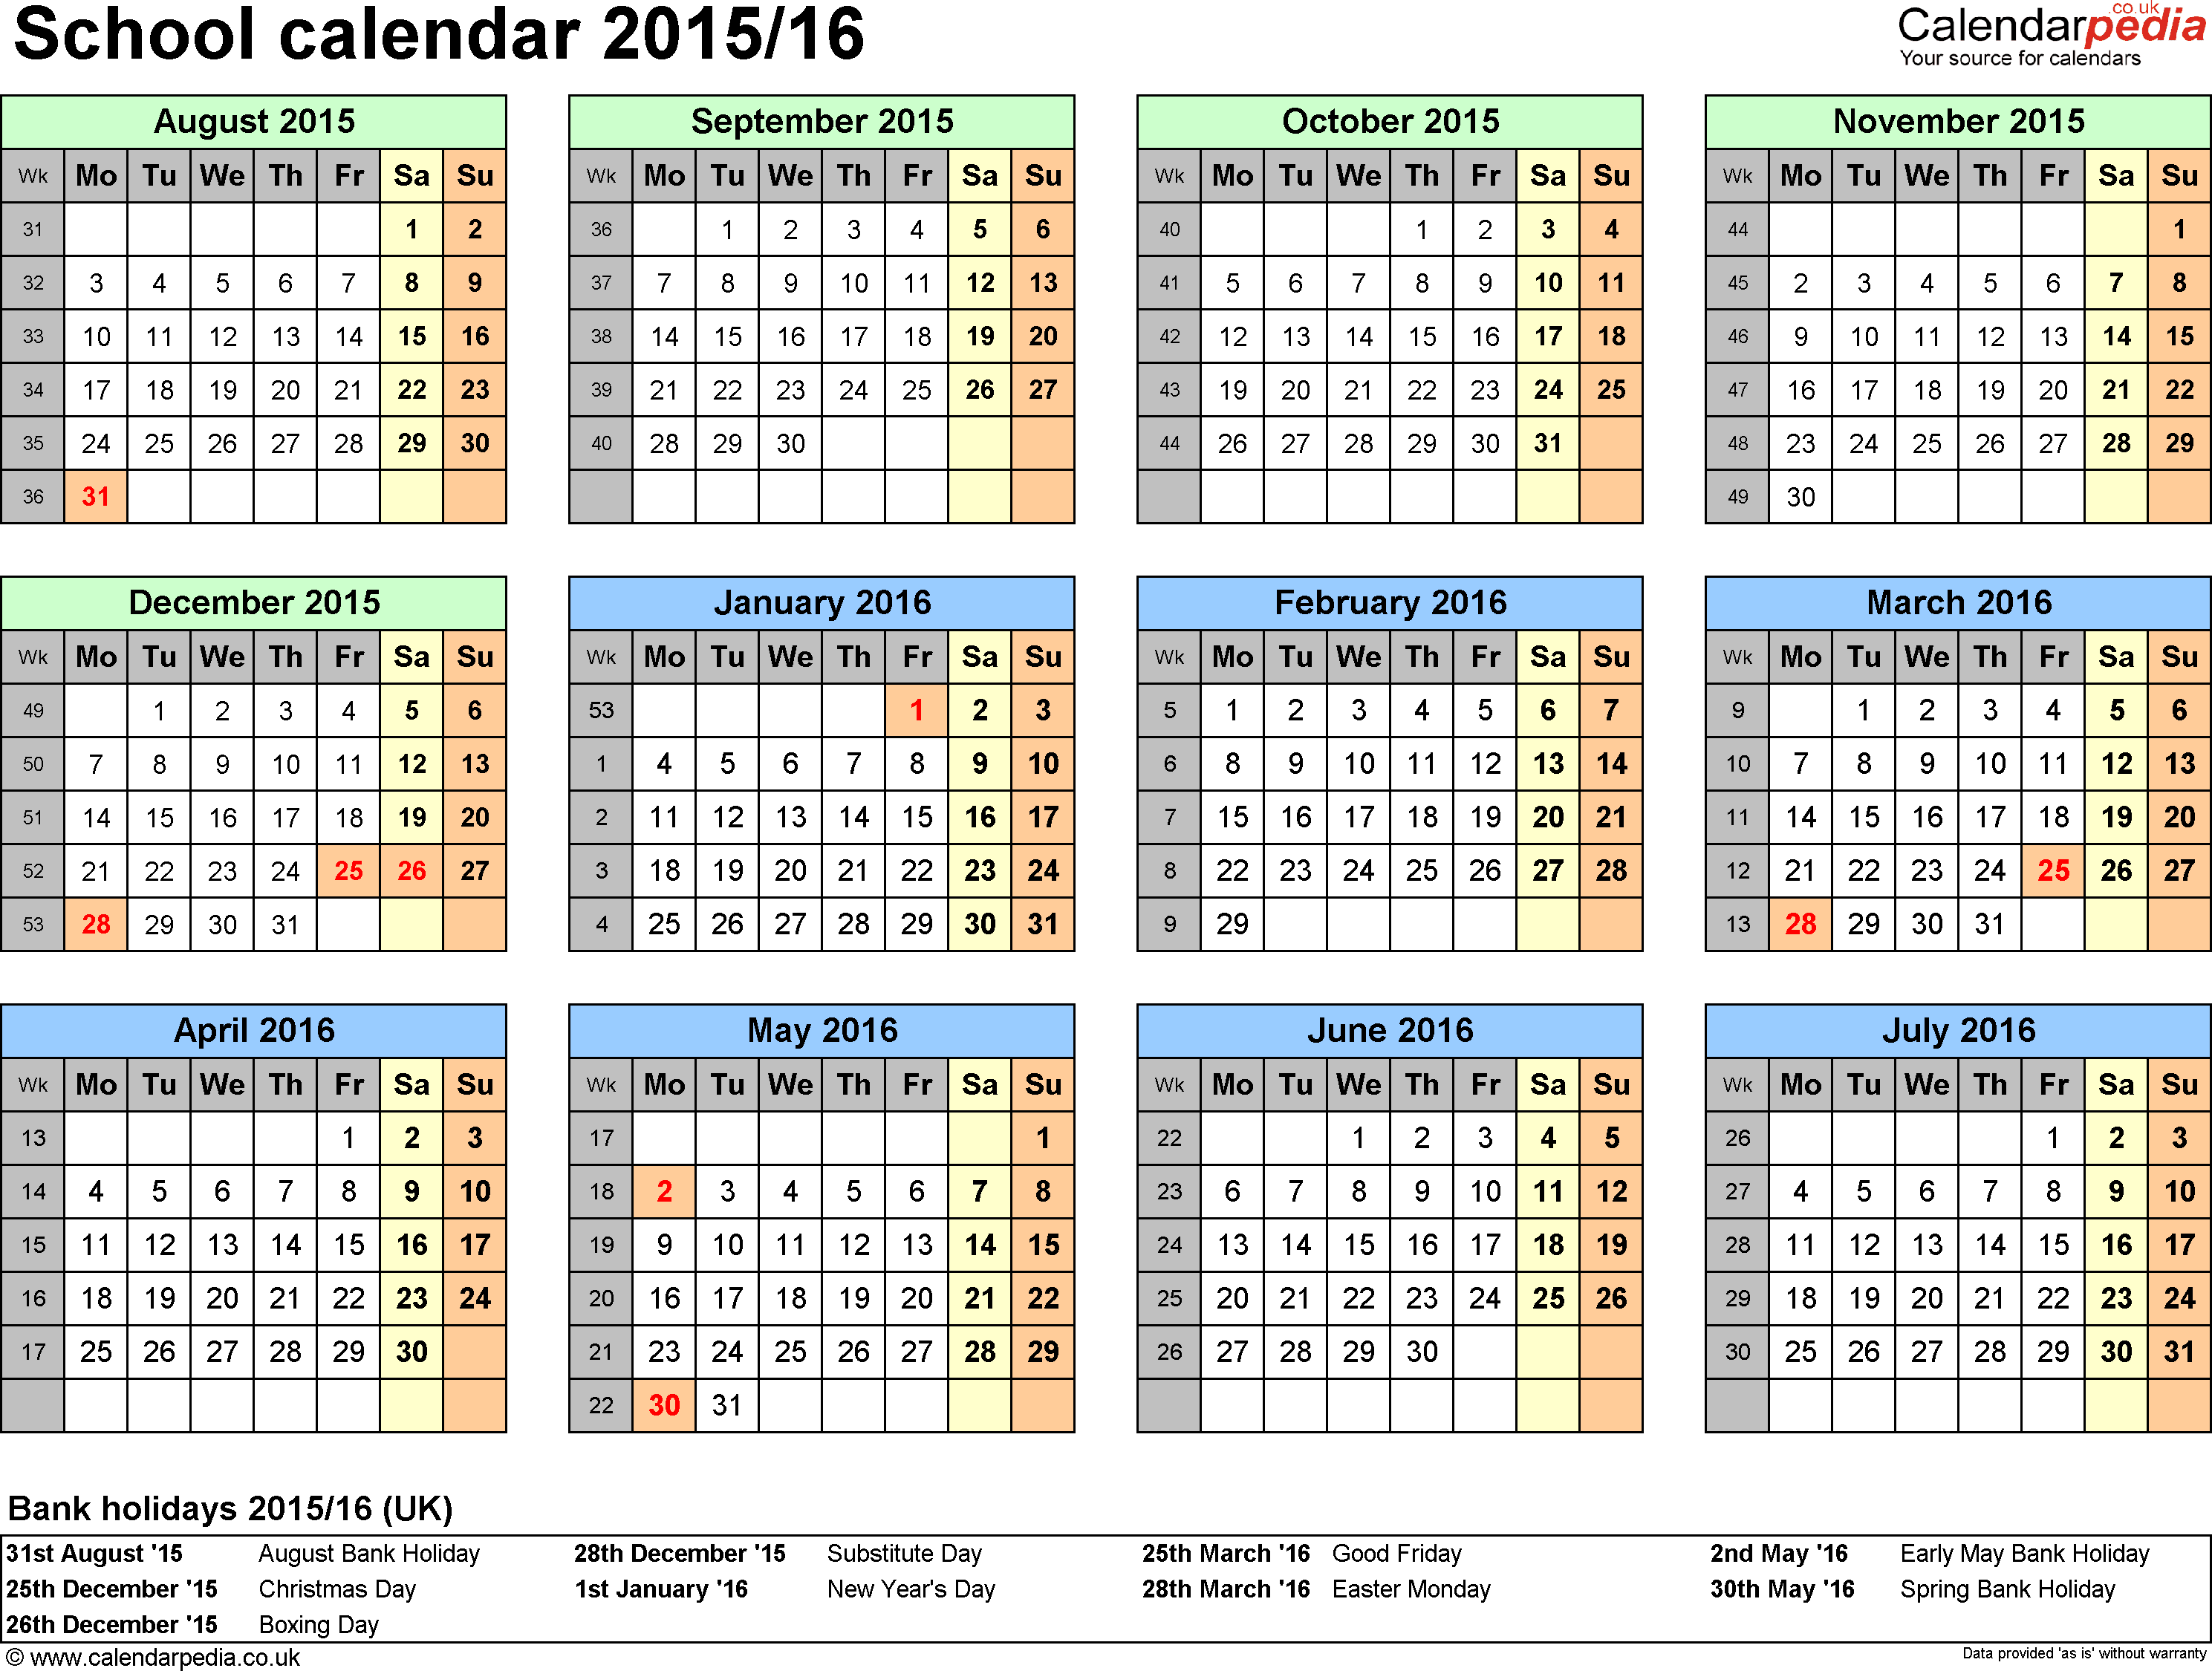 Template 4: School year calendars 2015/16 as PDF template, year at a glance, 1 page